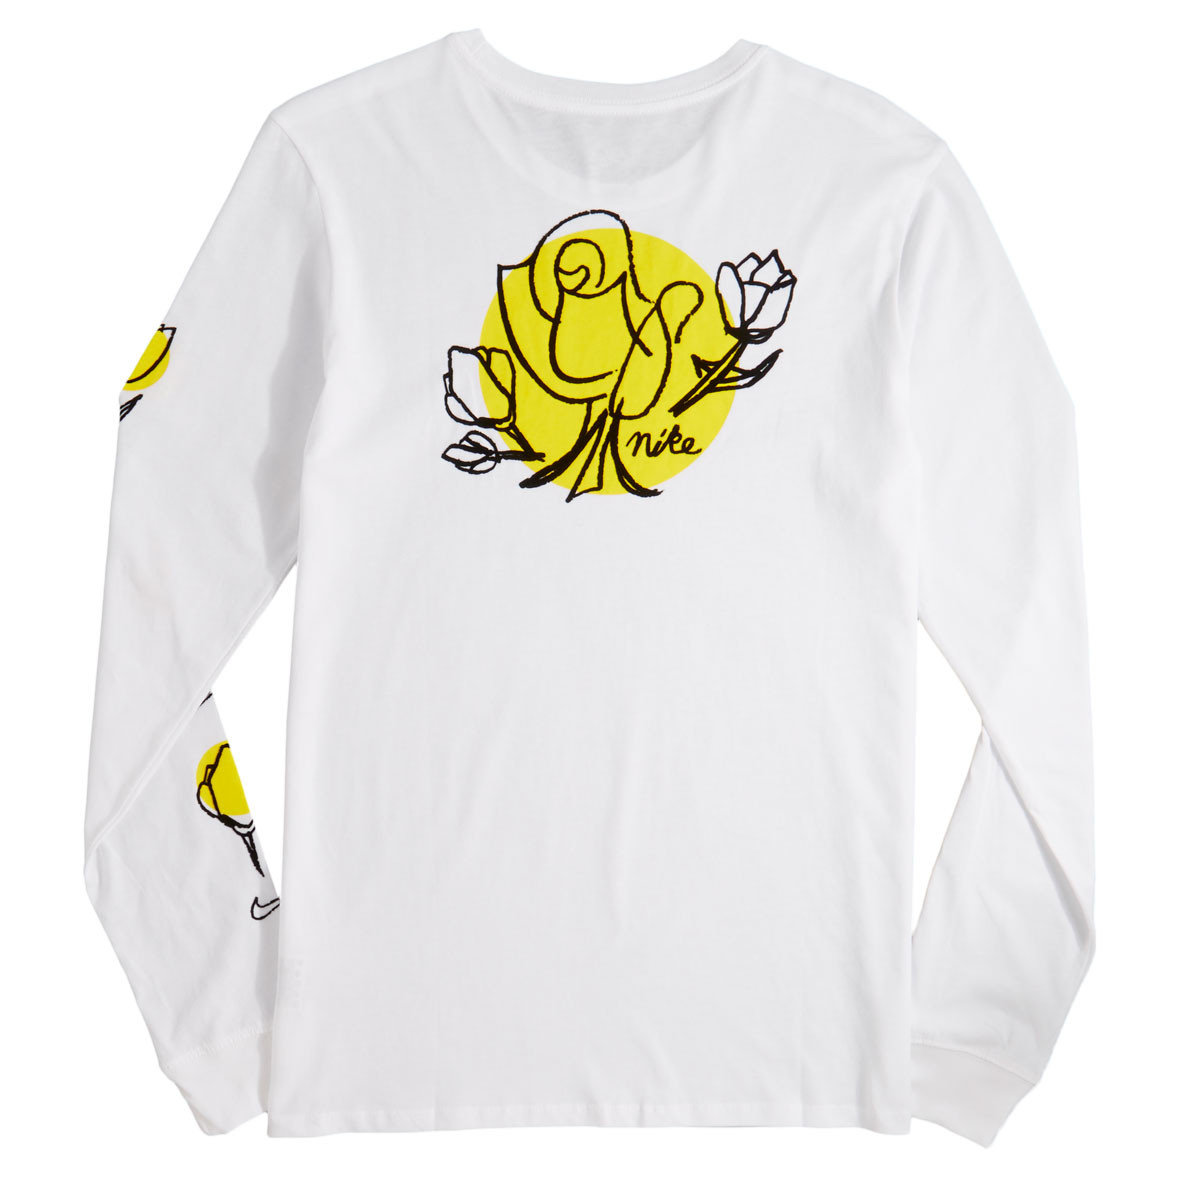 0d0dd592b53 Nike SB Roses Long Sleeve T-Shirt - White Black - LG